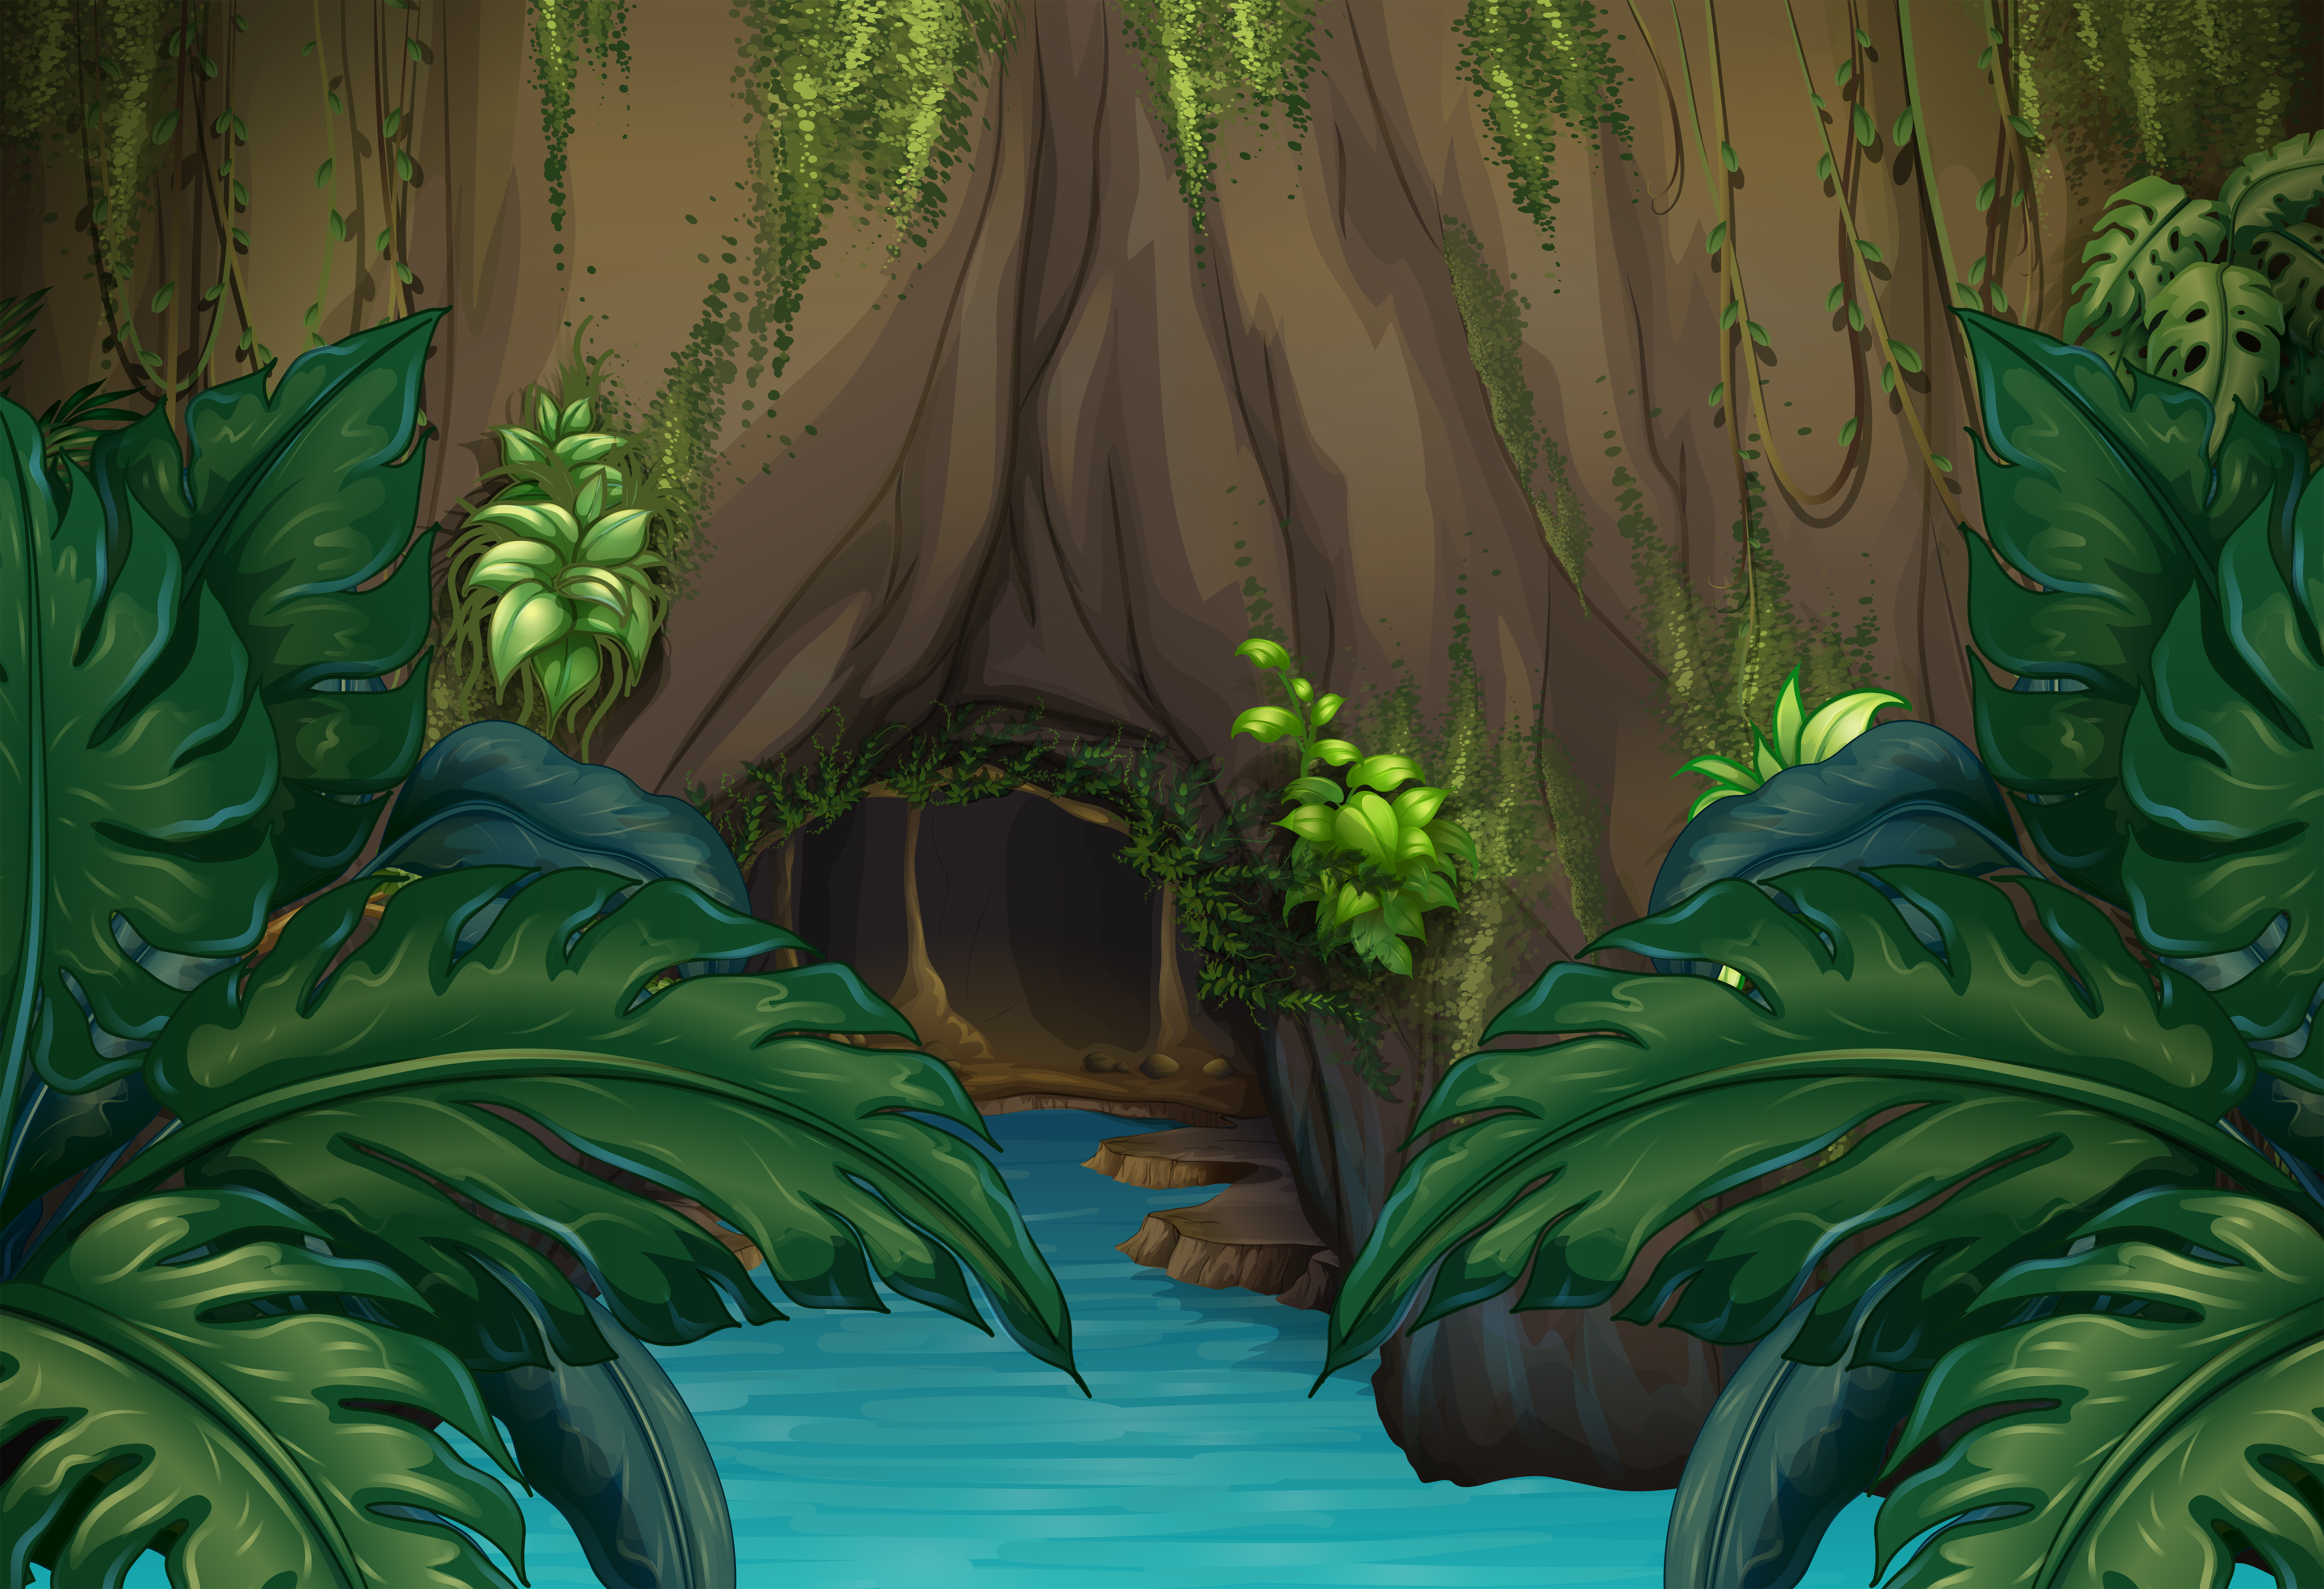 Jungle Scene With River And Cave Download Free Vectors